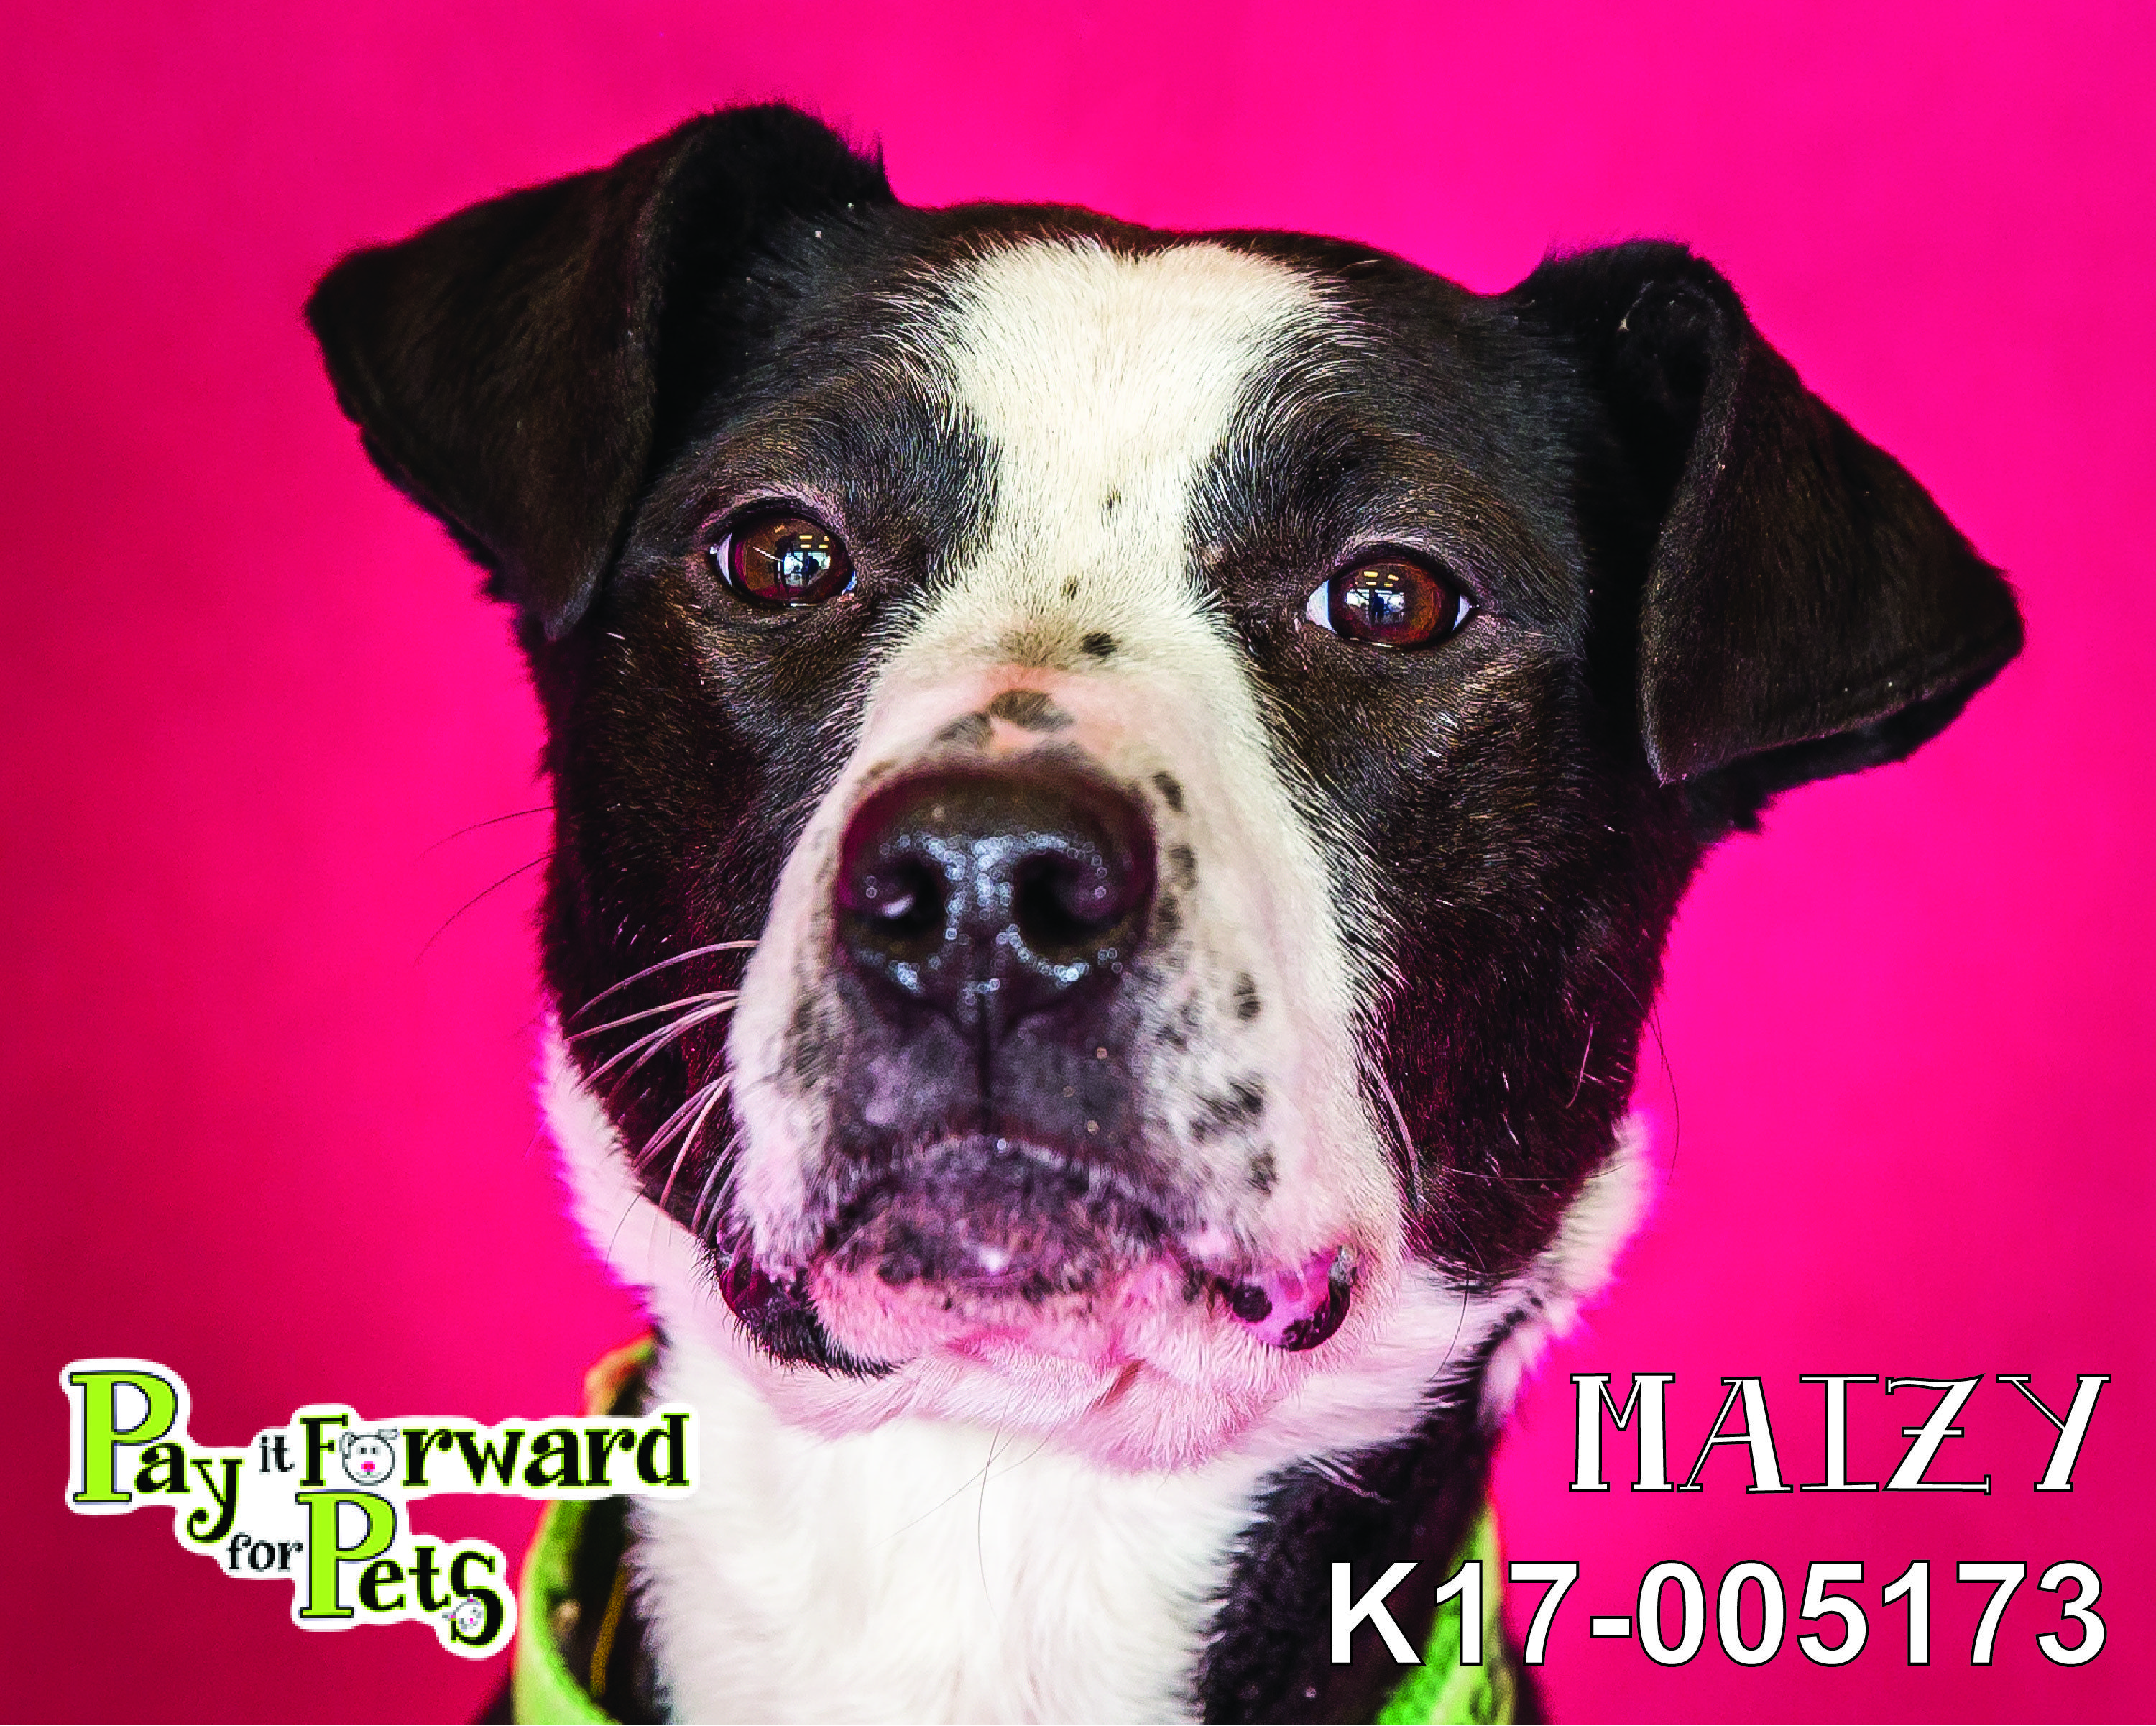 Maizy is an adoptable terrier searching for a forever